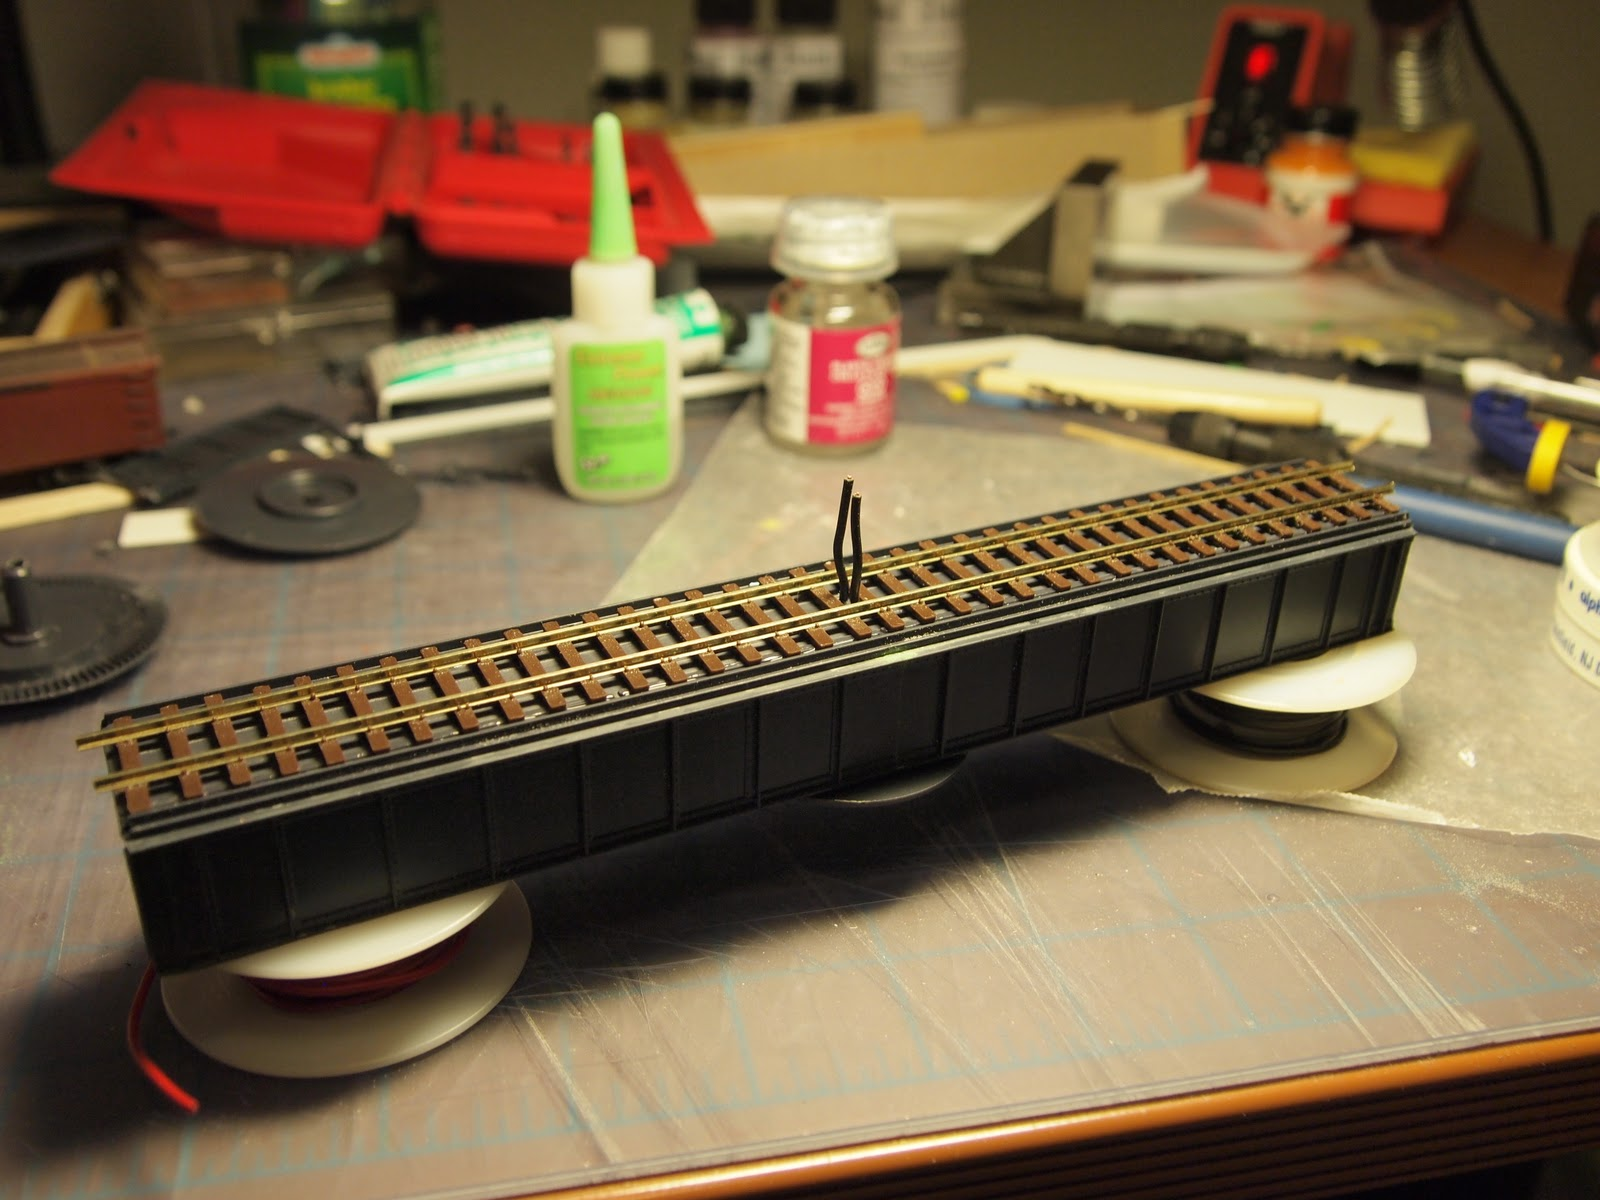 A Second Hon3 Turntable Some Railroad Youve Never Heard Of Dcc Ho Scale Turntables Wiring Diagrams I Left Rail Over Hanging On The End Bridge As Ill Cut This Down To Perfect Size When Im Installing Layout